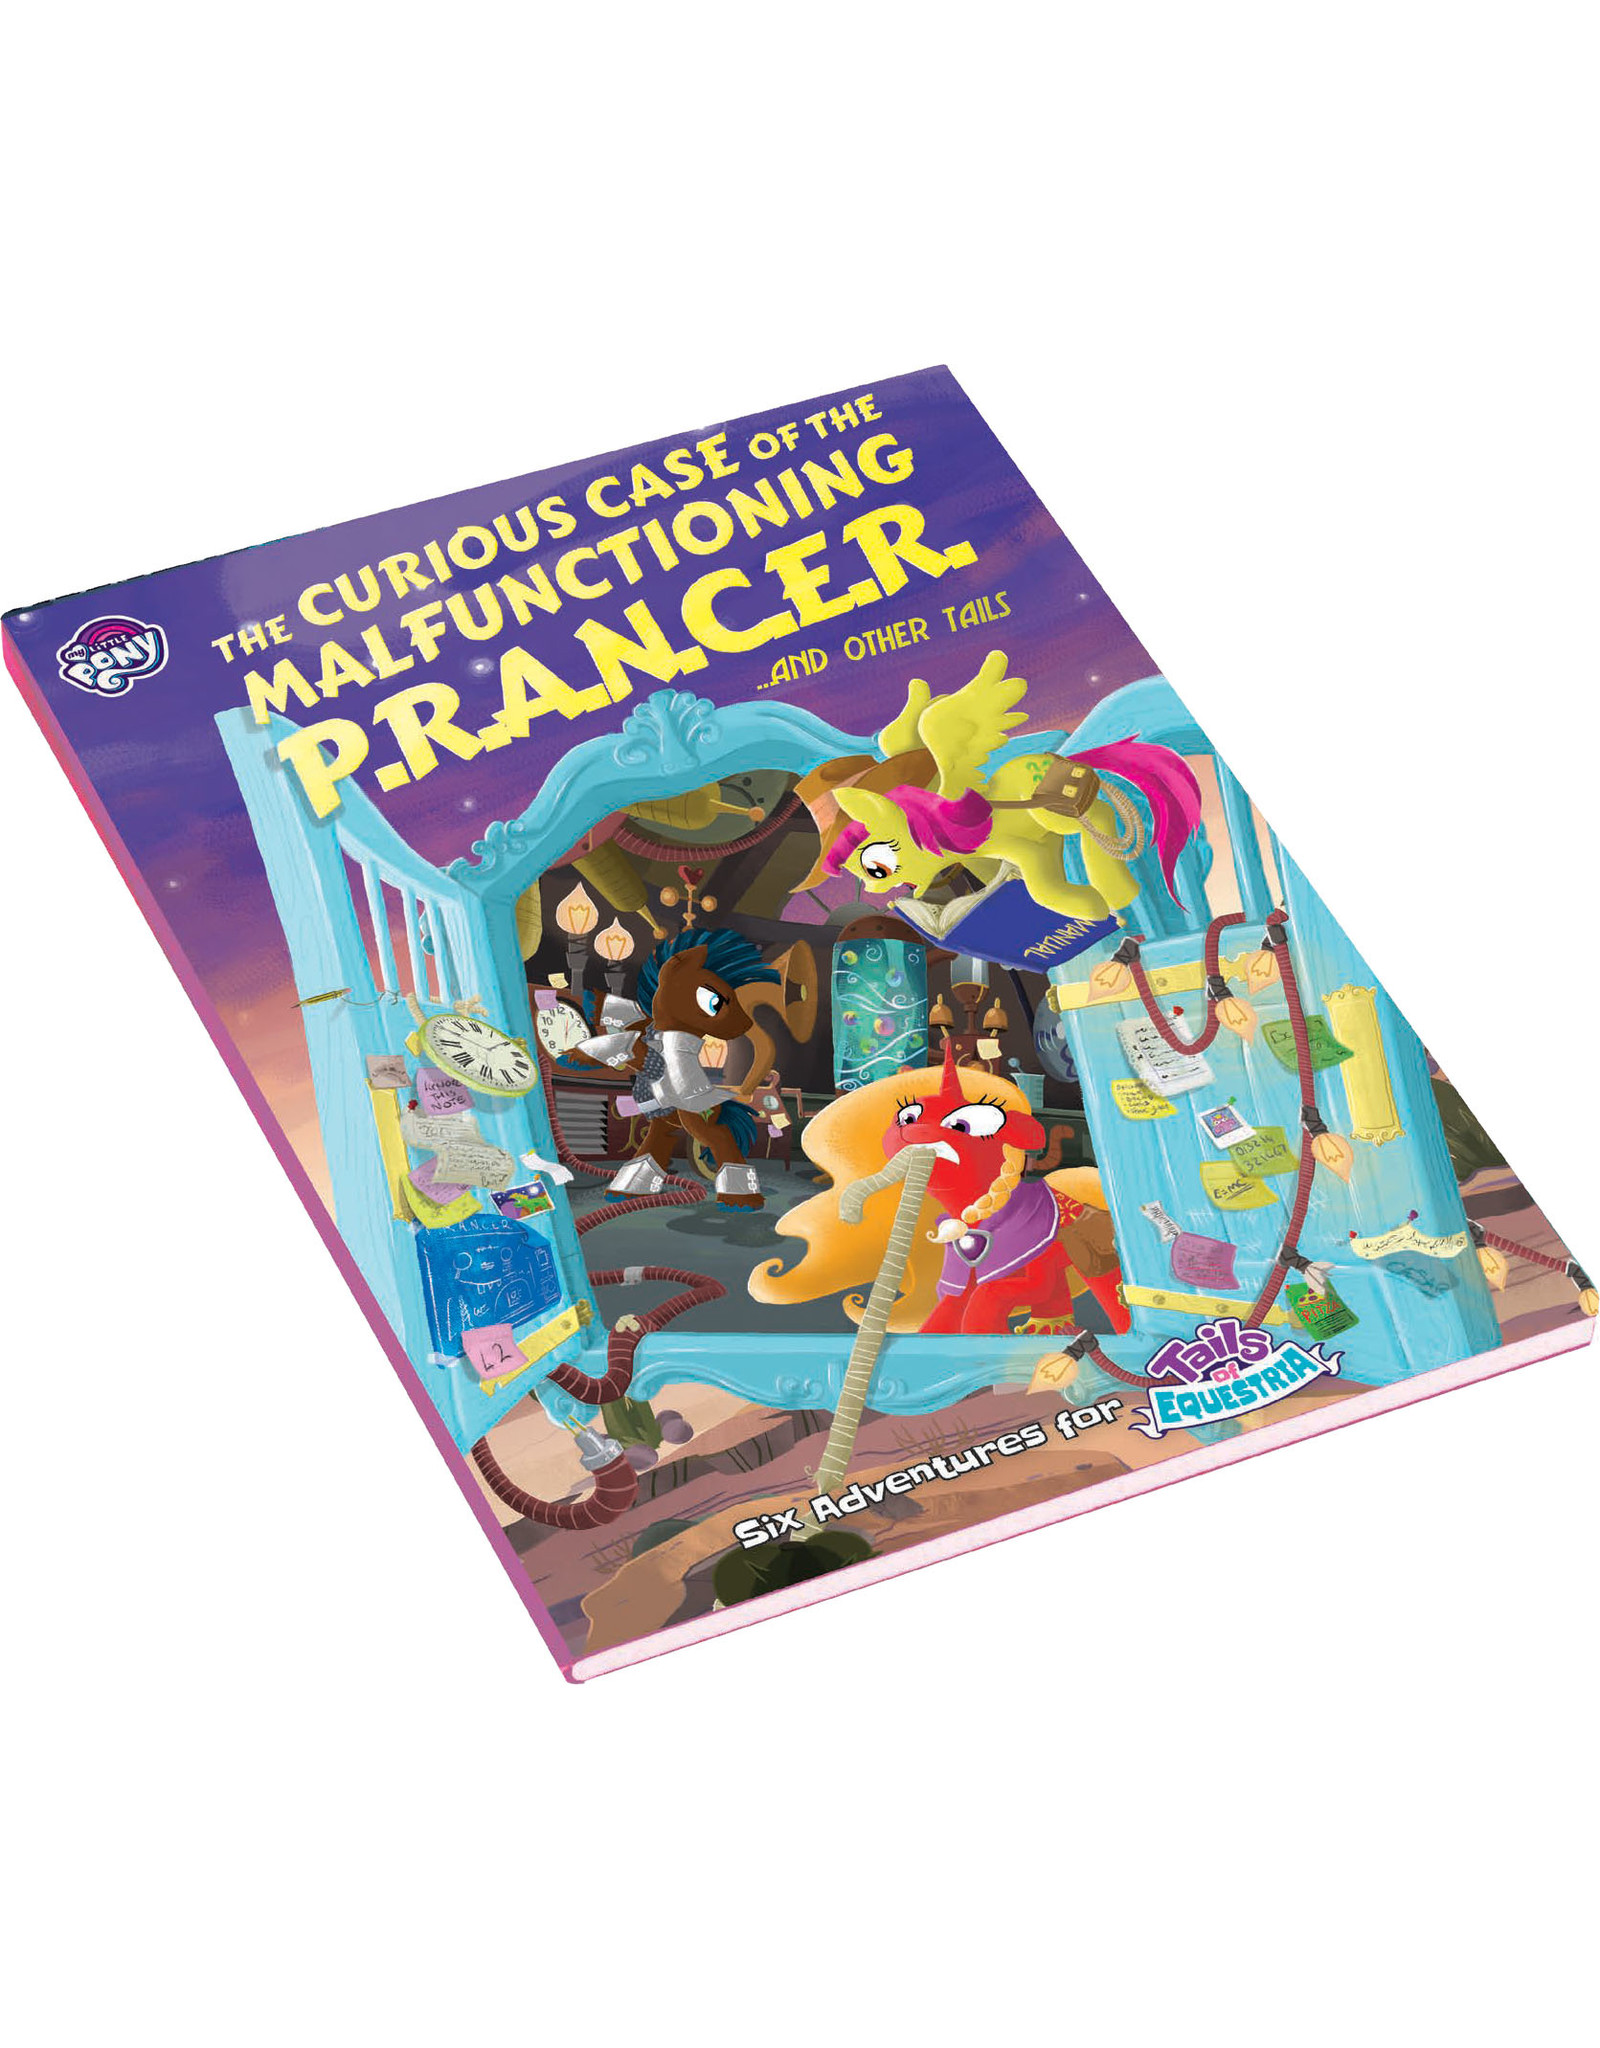 River Horse My Little Pony: Tails of Equestria RPG - The Curious Case of the Malfunctioning P.R.A.N.C.E.R. and Other Tails